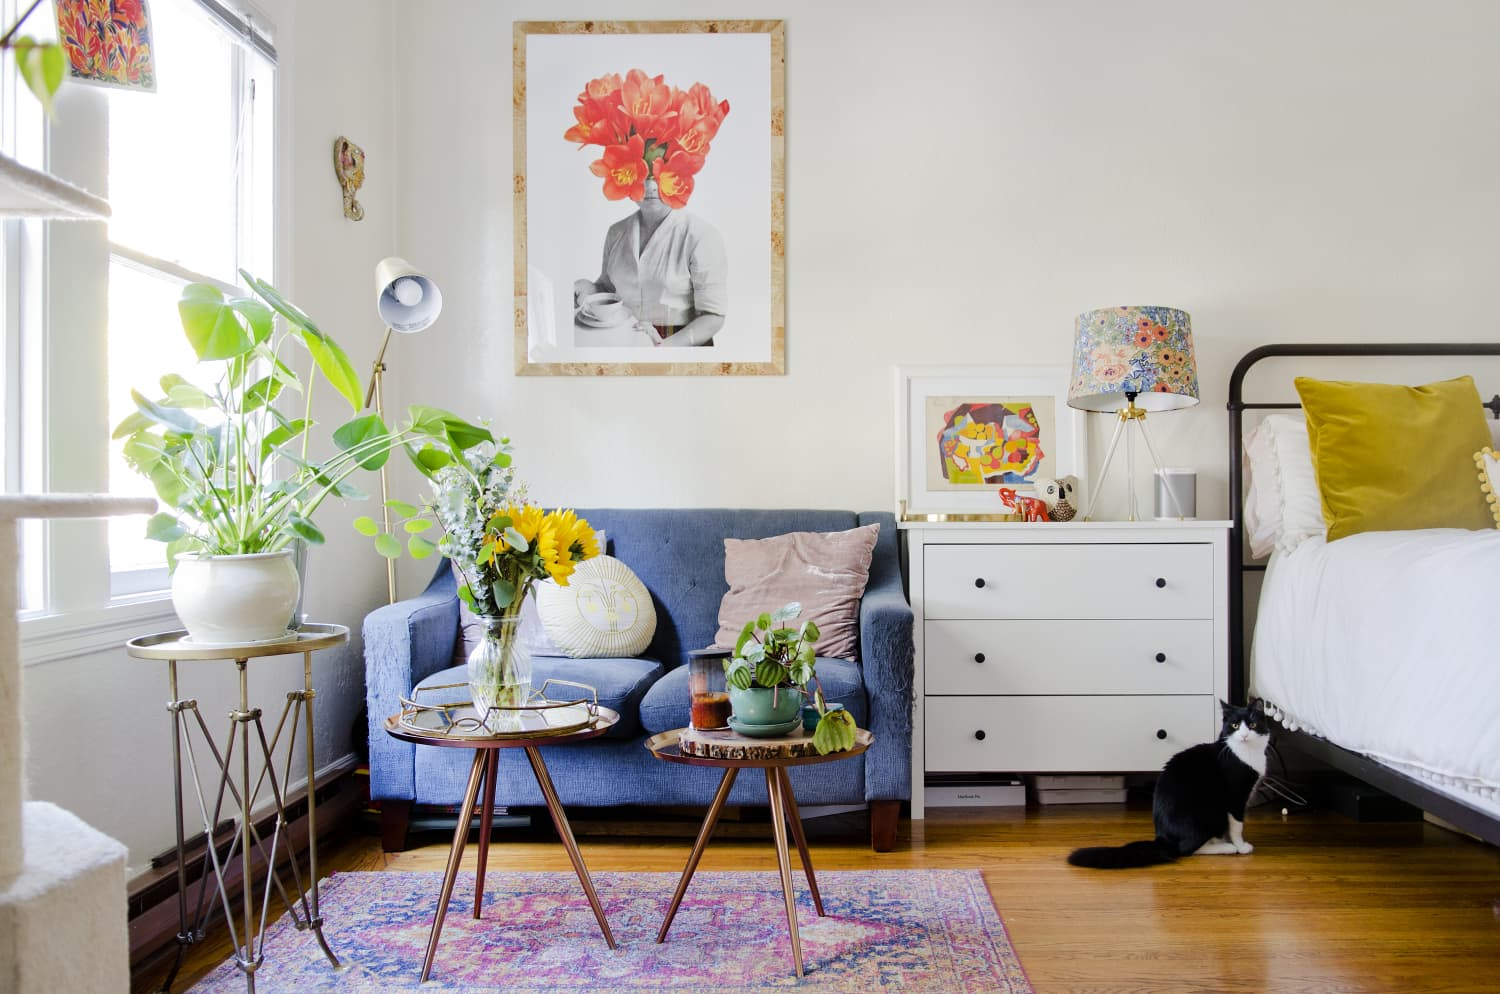 The 10 Smartest, Most Stylish Studio Apartments of 2019